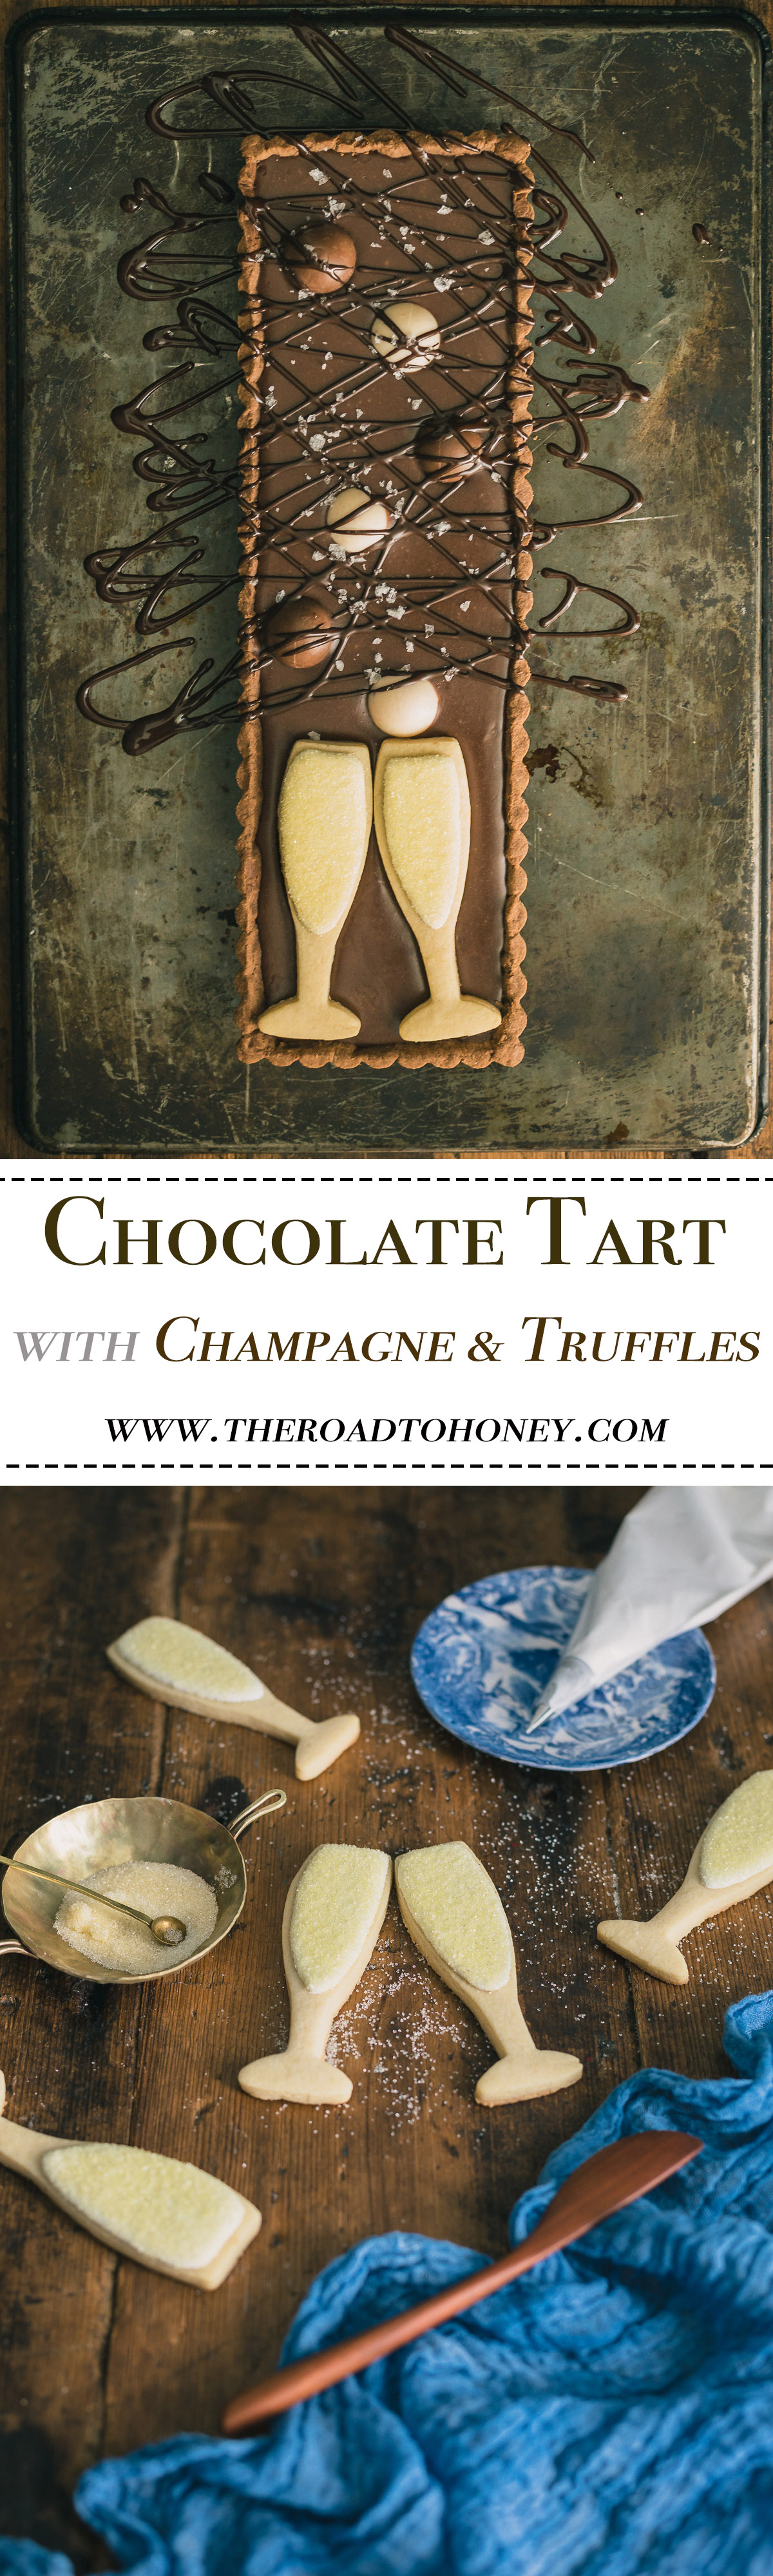 Chocolate Tart with Champagne & Truffles - A buttery chocolate crust is filled with a silky chocolate ganache with hints of champagne & cognac. It's then topped with luxurious chocolate truffles & champagne glass sugar cookies. It's the ultimate of romantic desserts & is perfect for Valentines Day, anniversaries, New Years, or any other day you want to up the romance & treat your senses to an indulgent chocolate dessert. Click for RECIPE.